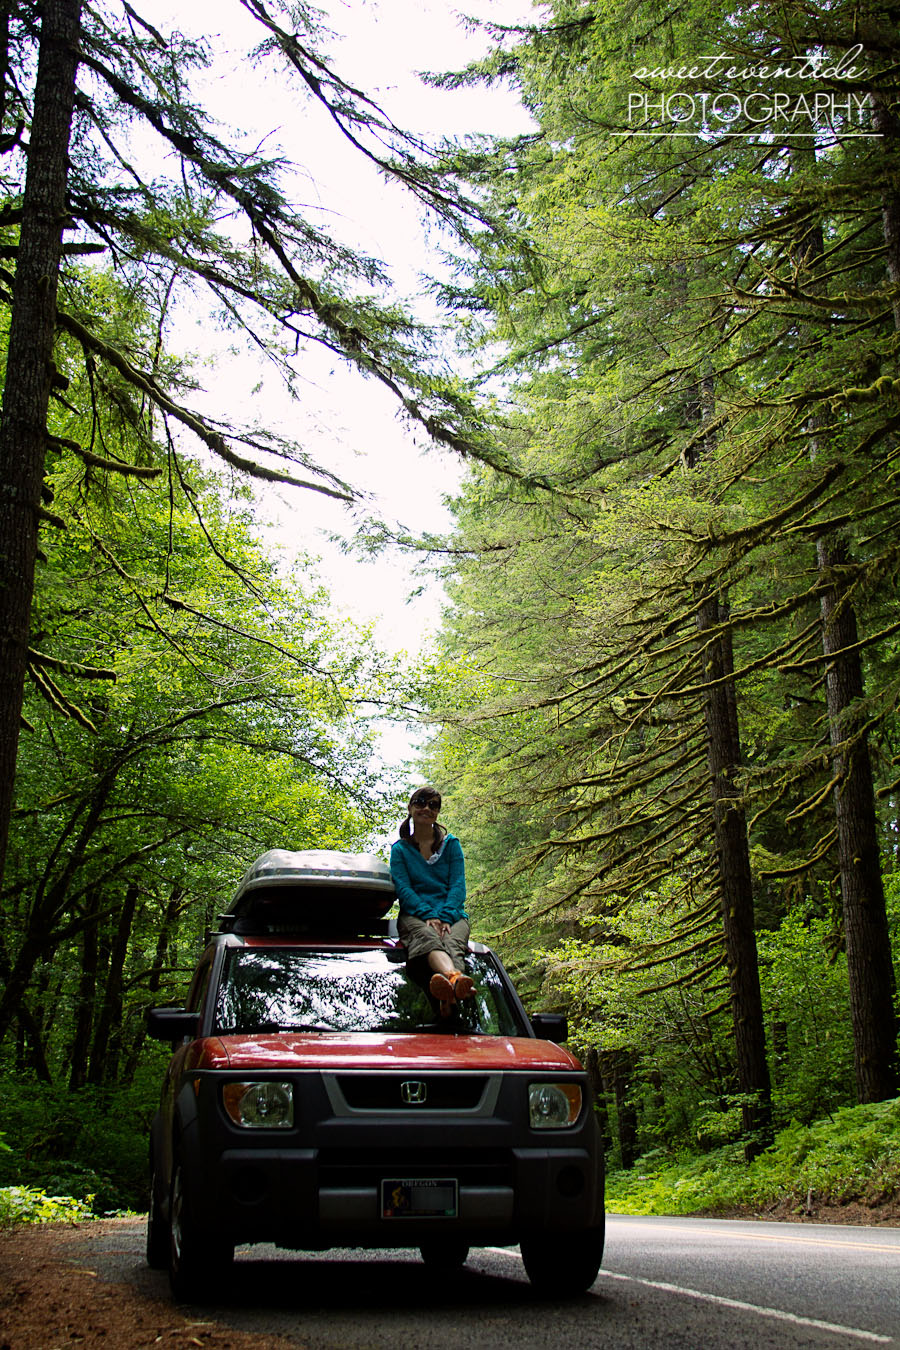 tillamook forest honda element road trip photo